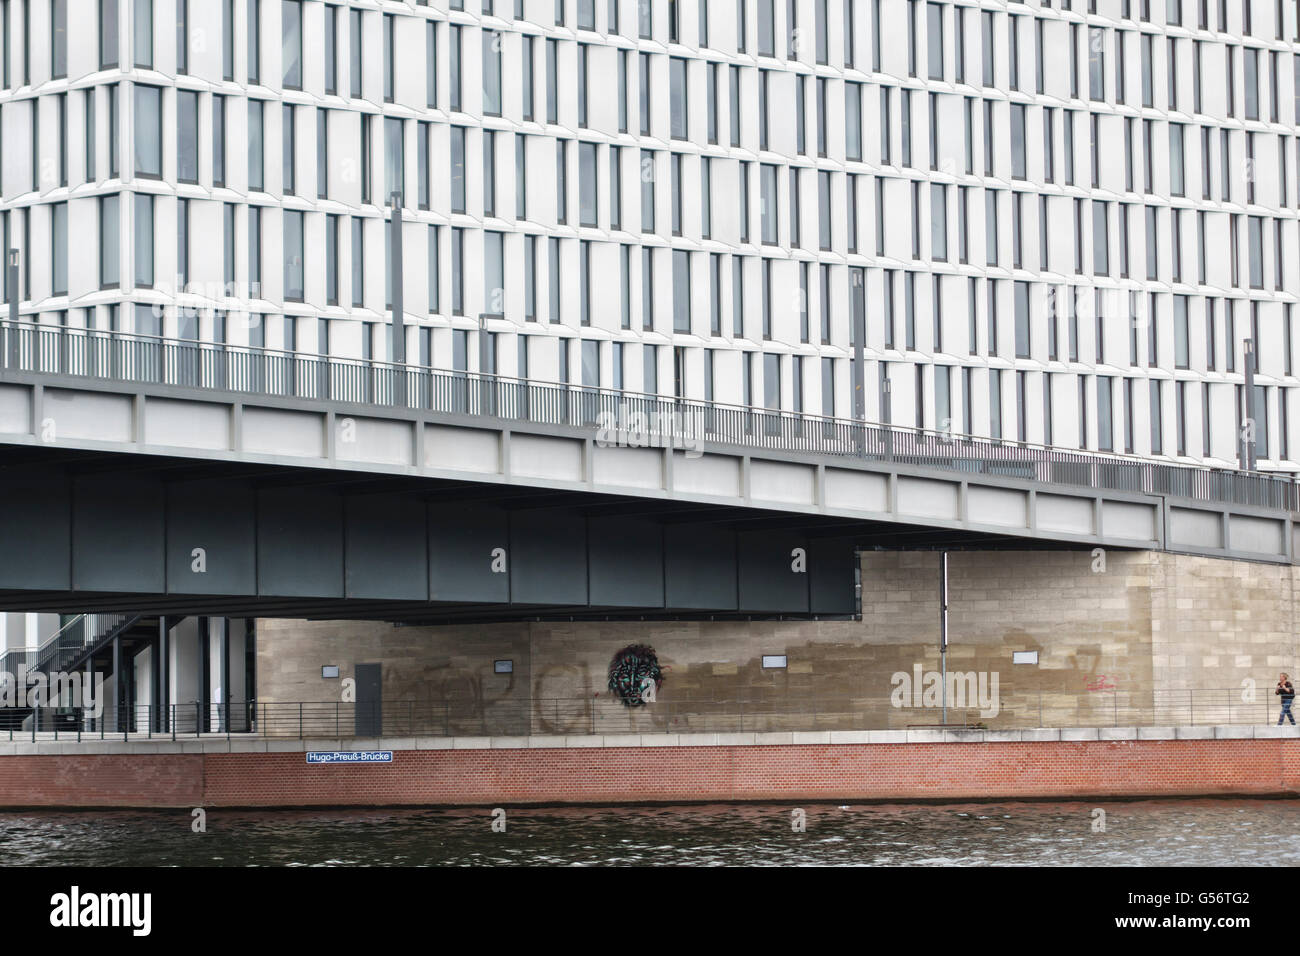 Berlin, Germany (Hugo Preuss Bridge, 2004). New offices and riverside walks have been built along the banks of the - Stock Image